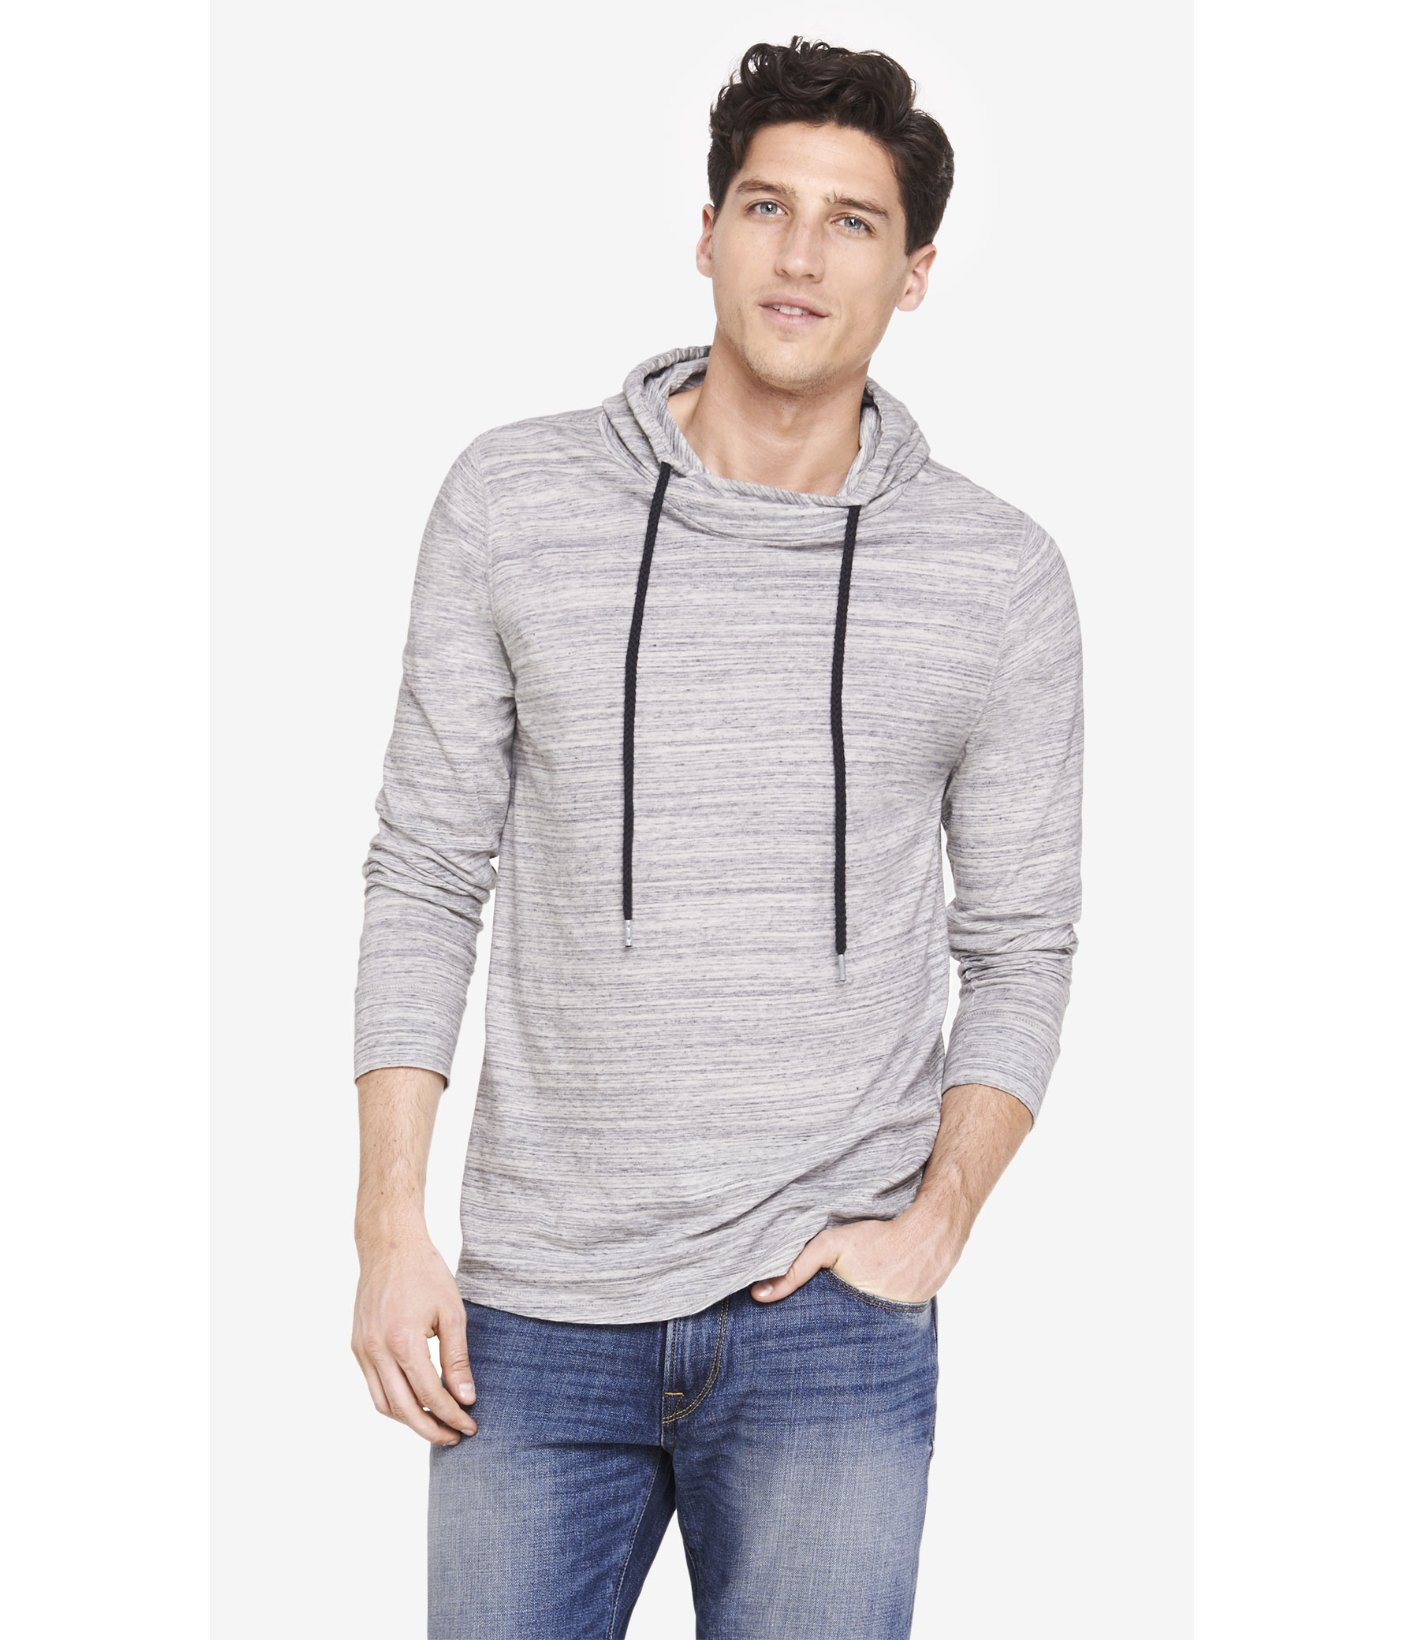 Express Space Dyed Crossover Neck Hoodie In Gray For Men Lyst